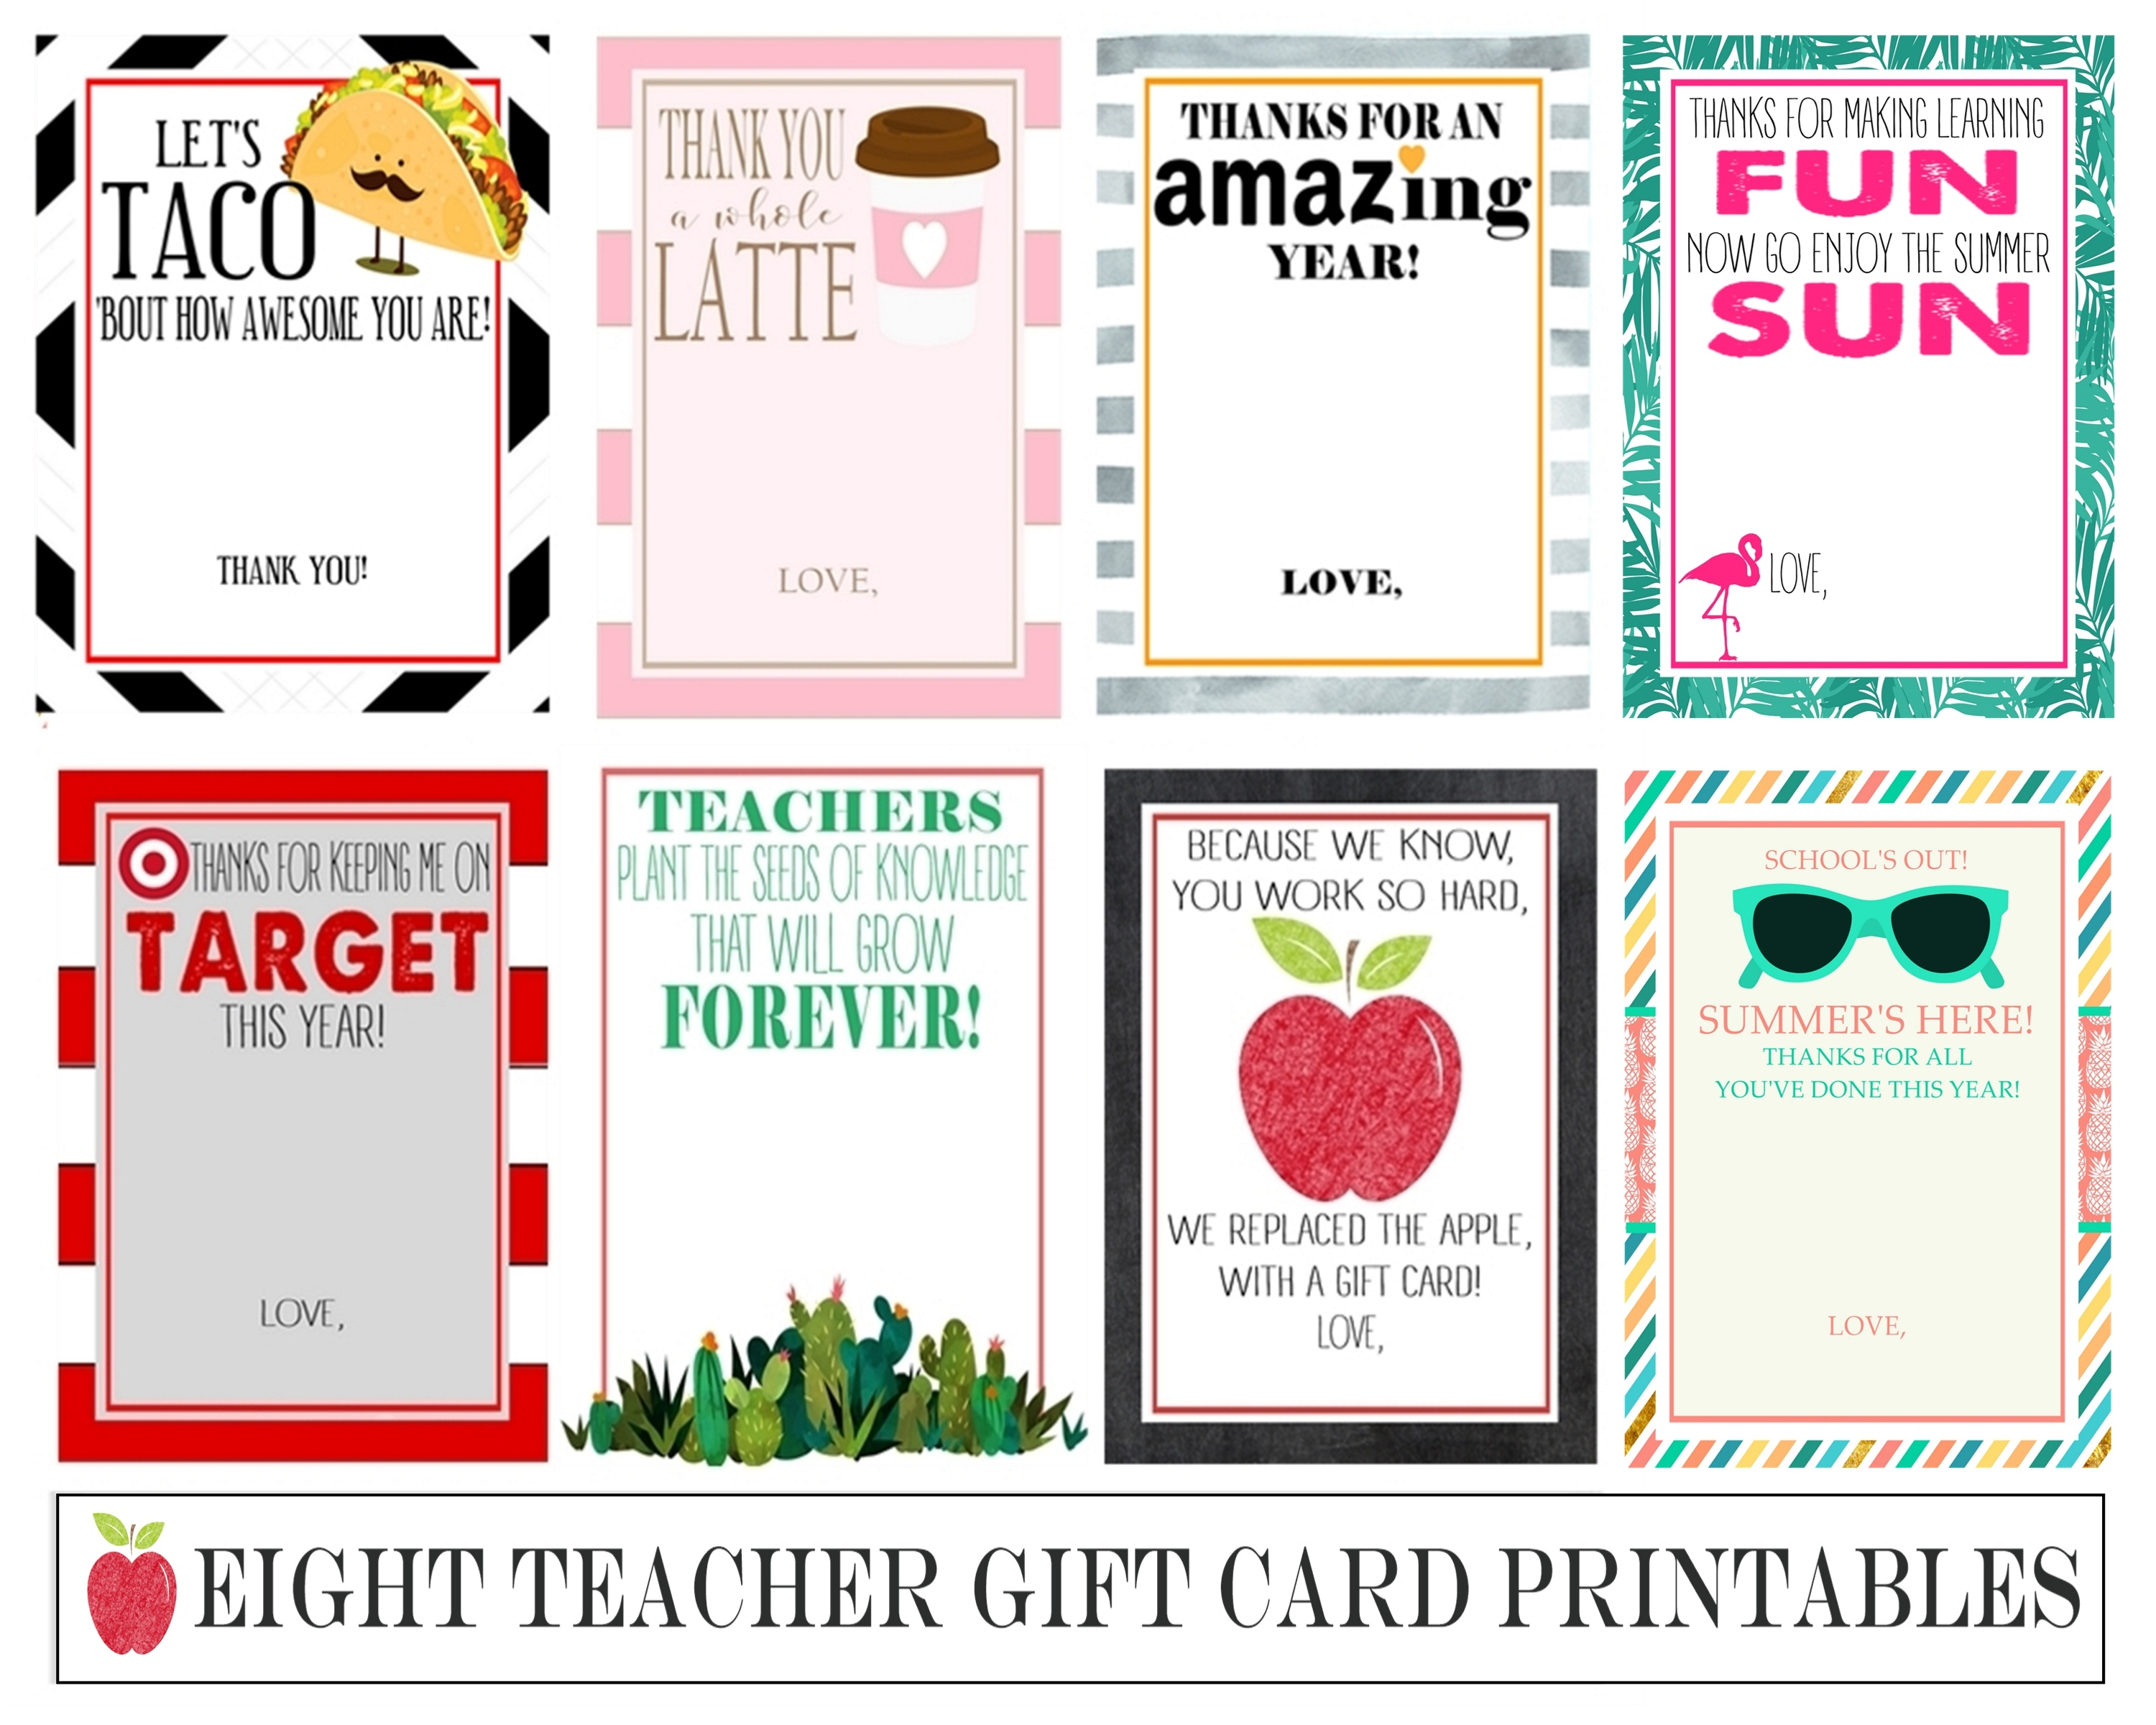 Eight Instant Download Teacher Gift Card Printables - Crisp Collective - Thanks A Latte Free Printable Card